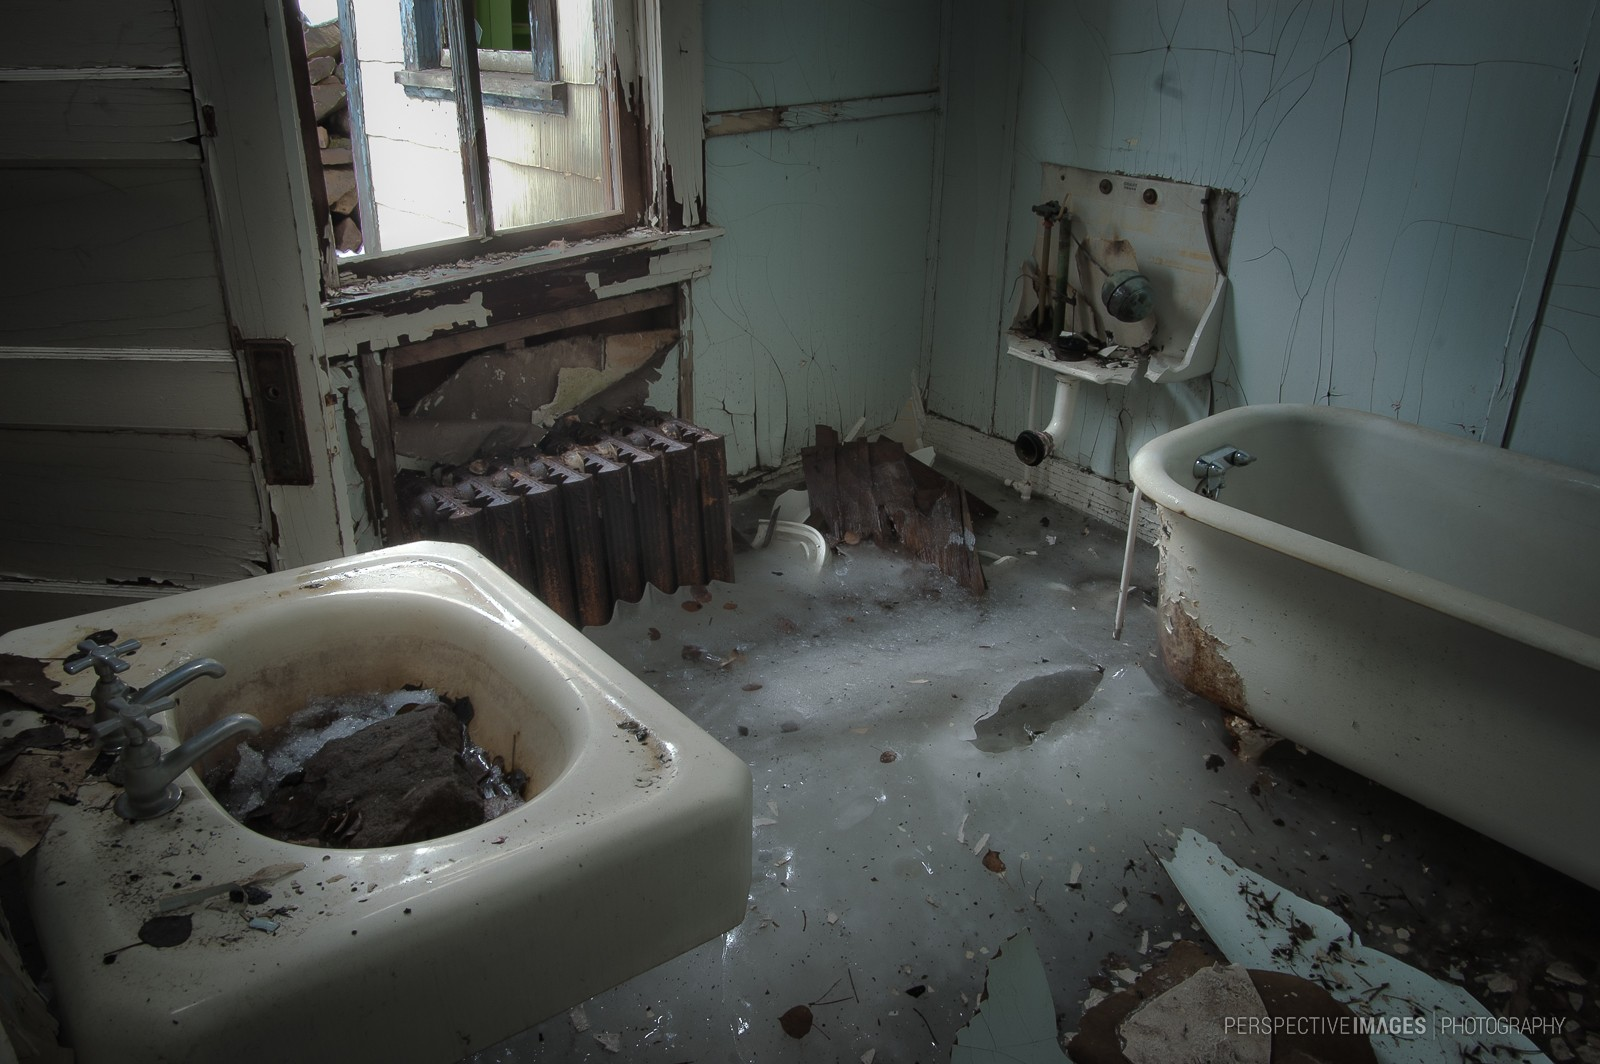 who left the tap running? - perspective images photography